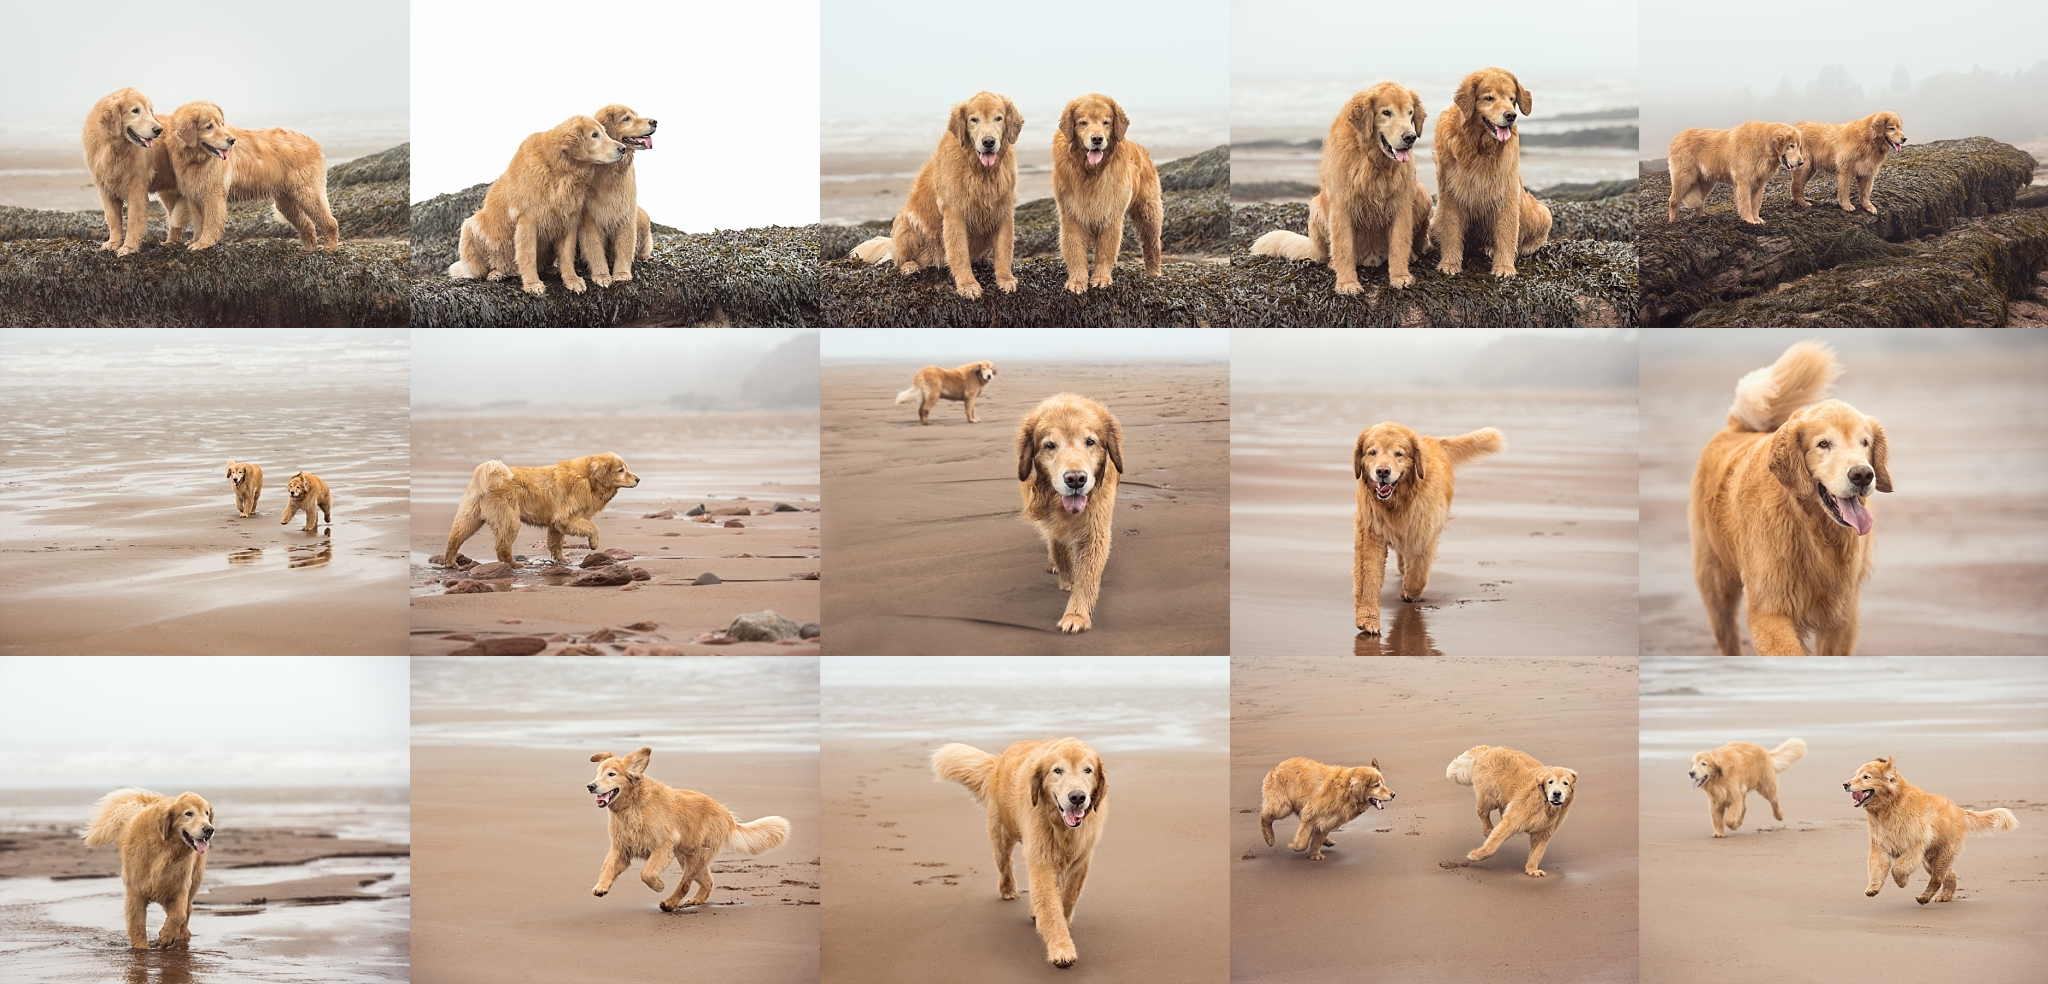 A foggy, drizzly day at the beach can still be lots of fun when there are Golden Retrievers around!